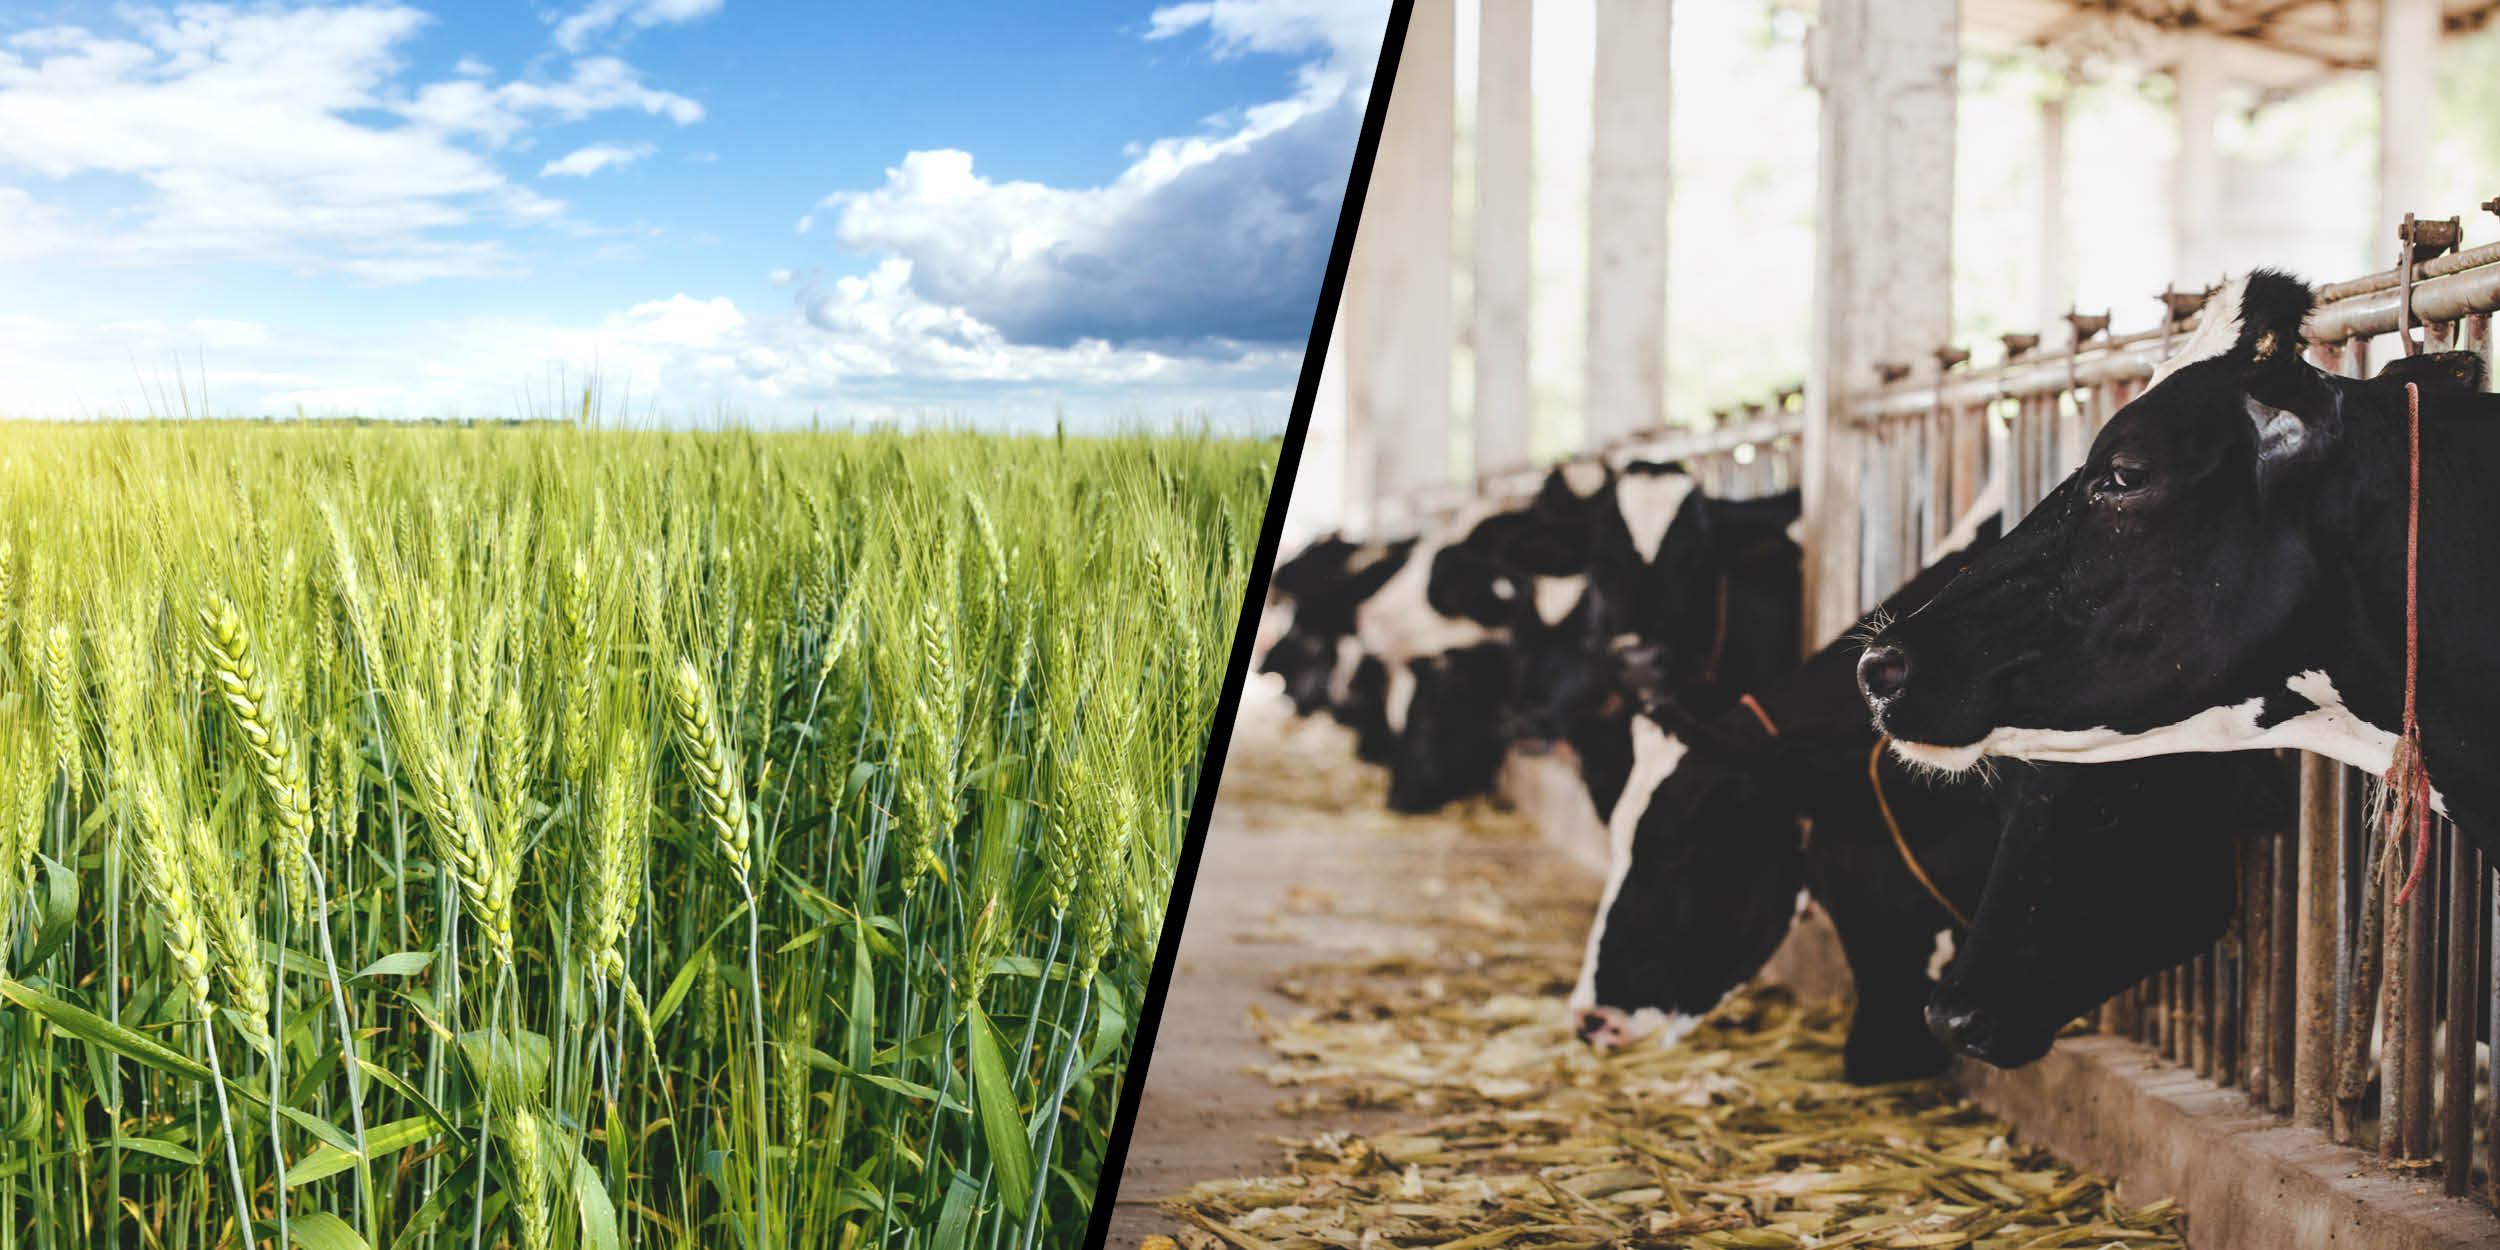 Is meat production hurting our planet